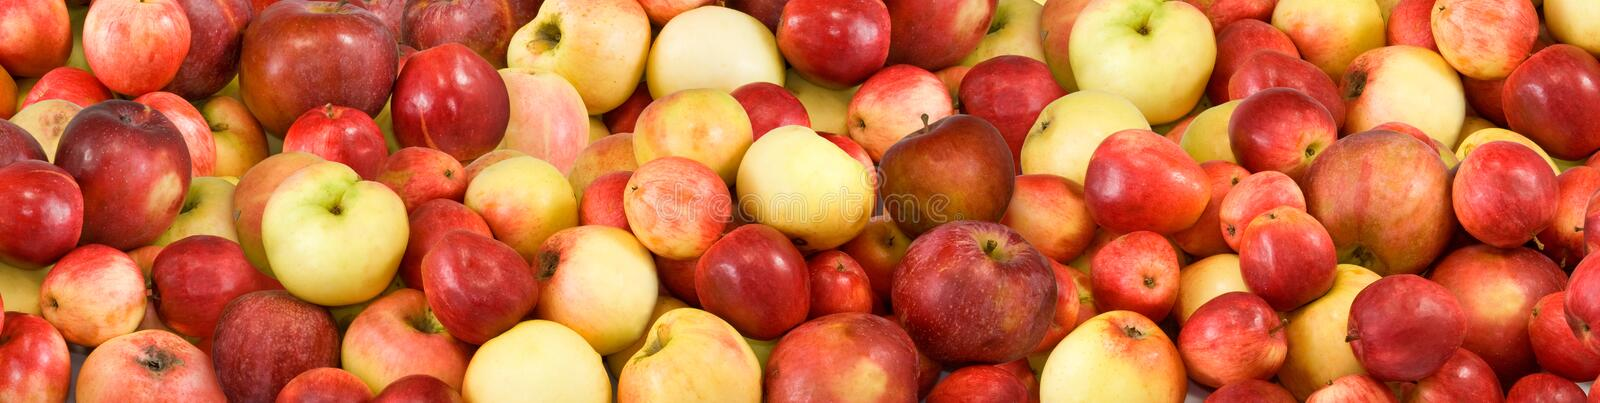 Image of many ripe apples. Closeup royalty free stock images